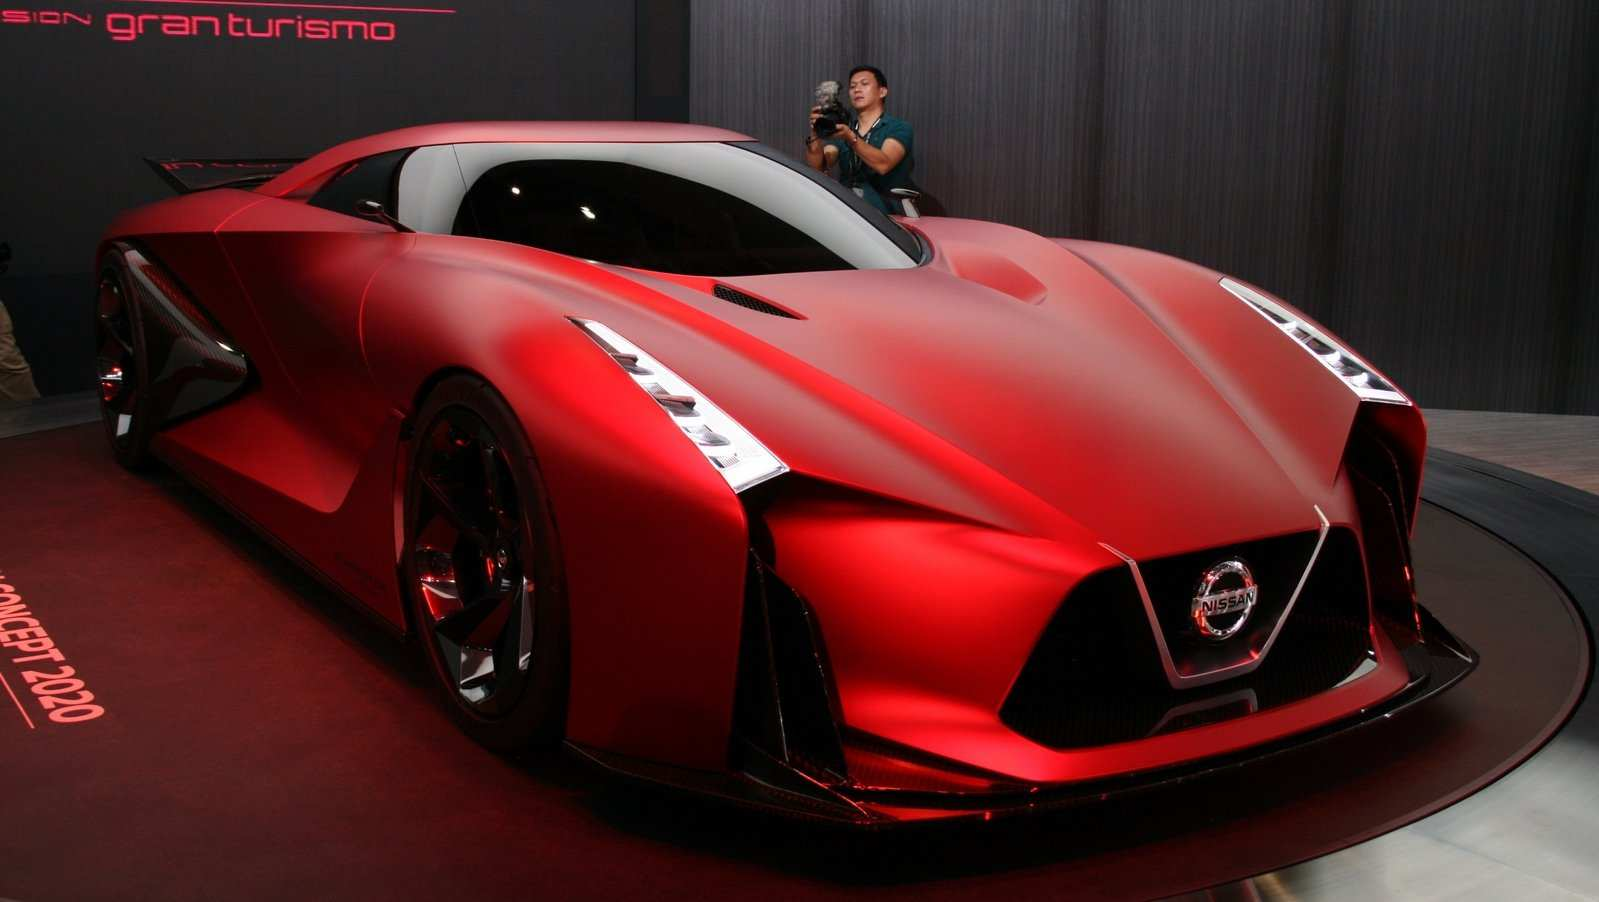 62 All New Nissan Concept 2020 Top Speed Overview